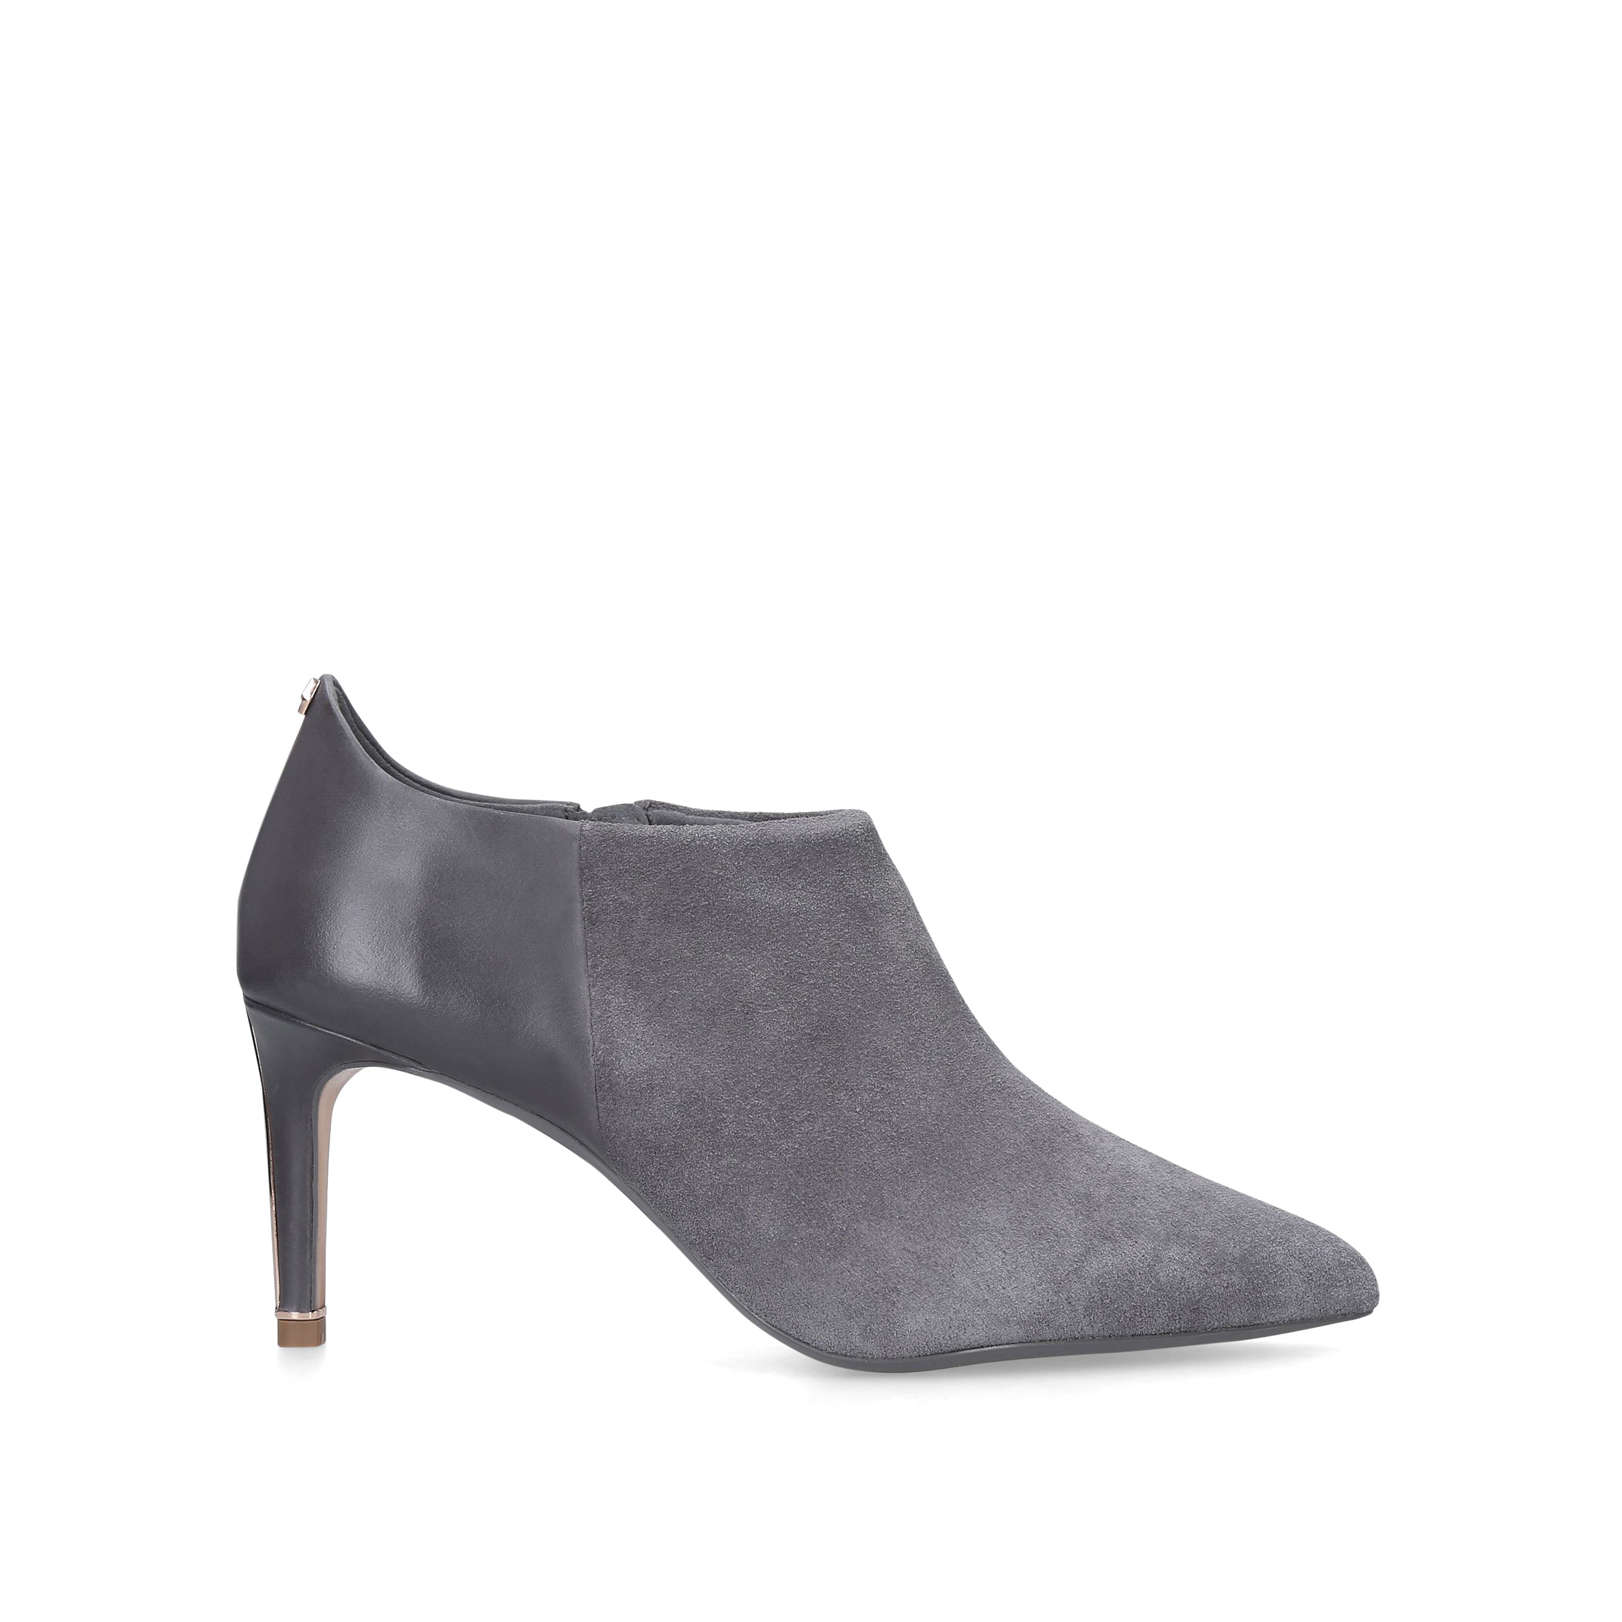 3f923d467449 AKASHERS Akashers Ted Baker Ankle Boots Grey by TED BAKER